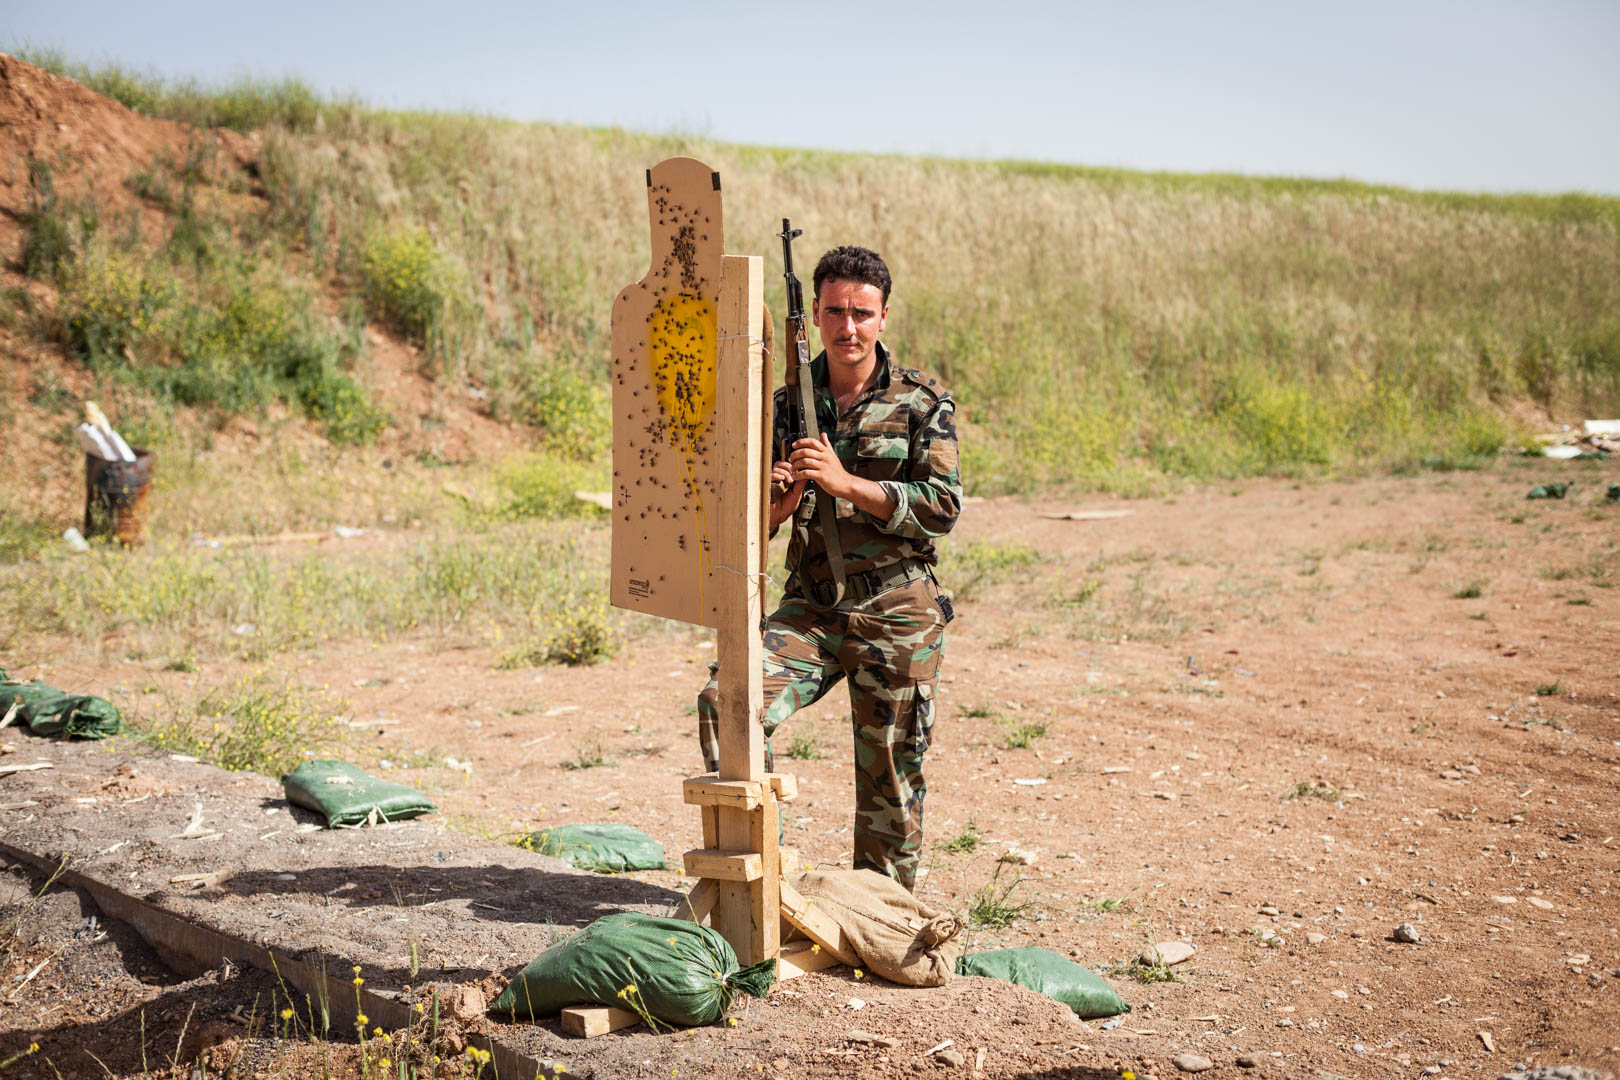 A member of the Peshmerga awaits his instructor at the shooting range.